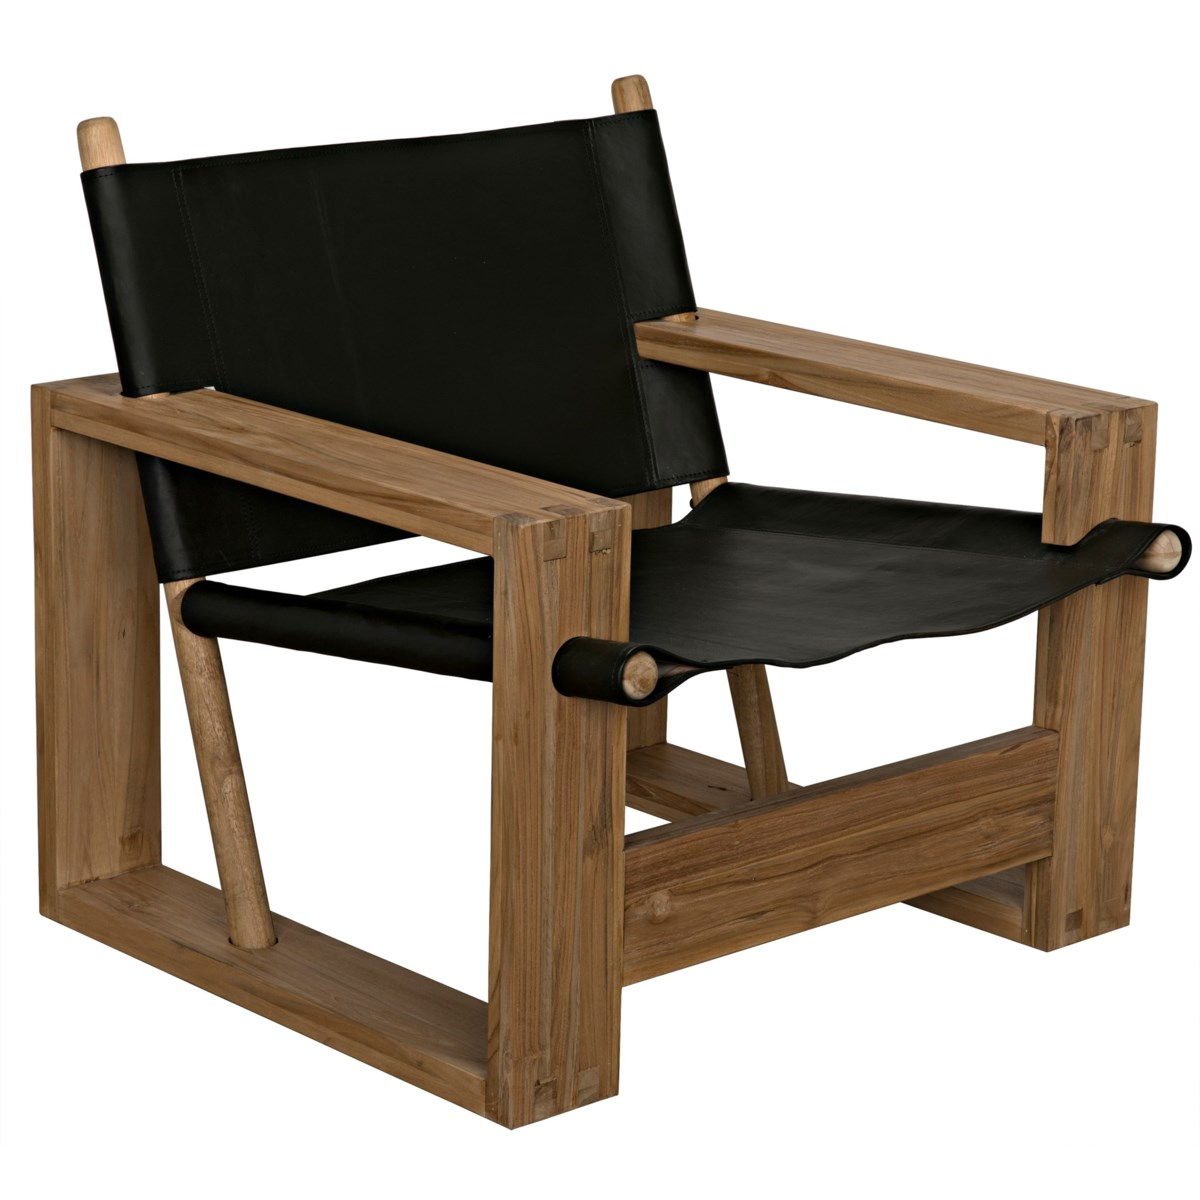 Agamemnon Chair, Teak of Leather